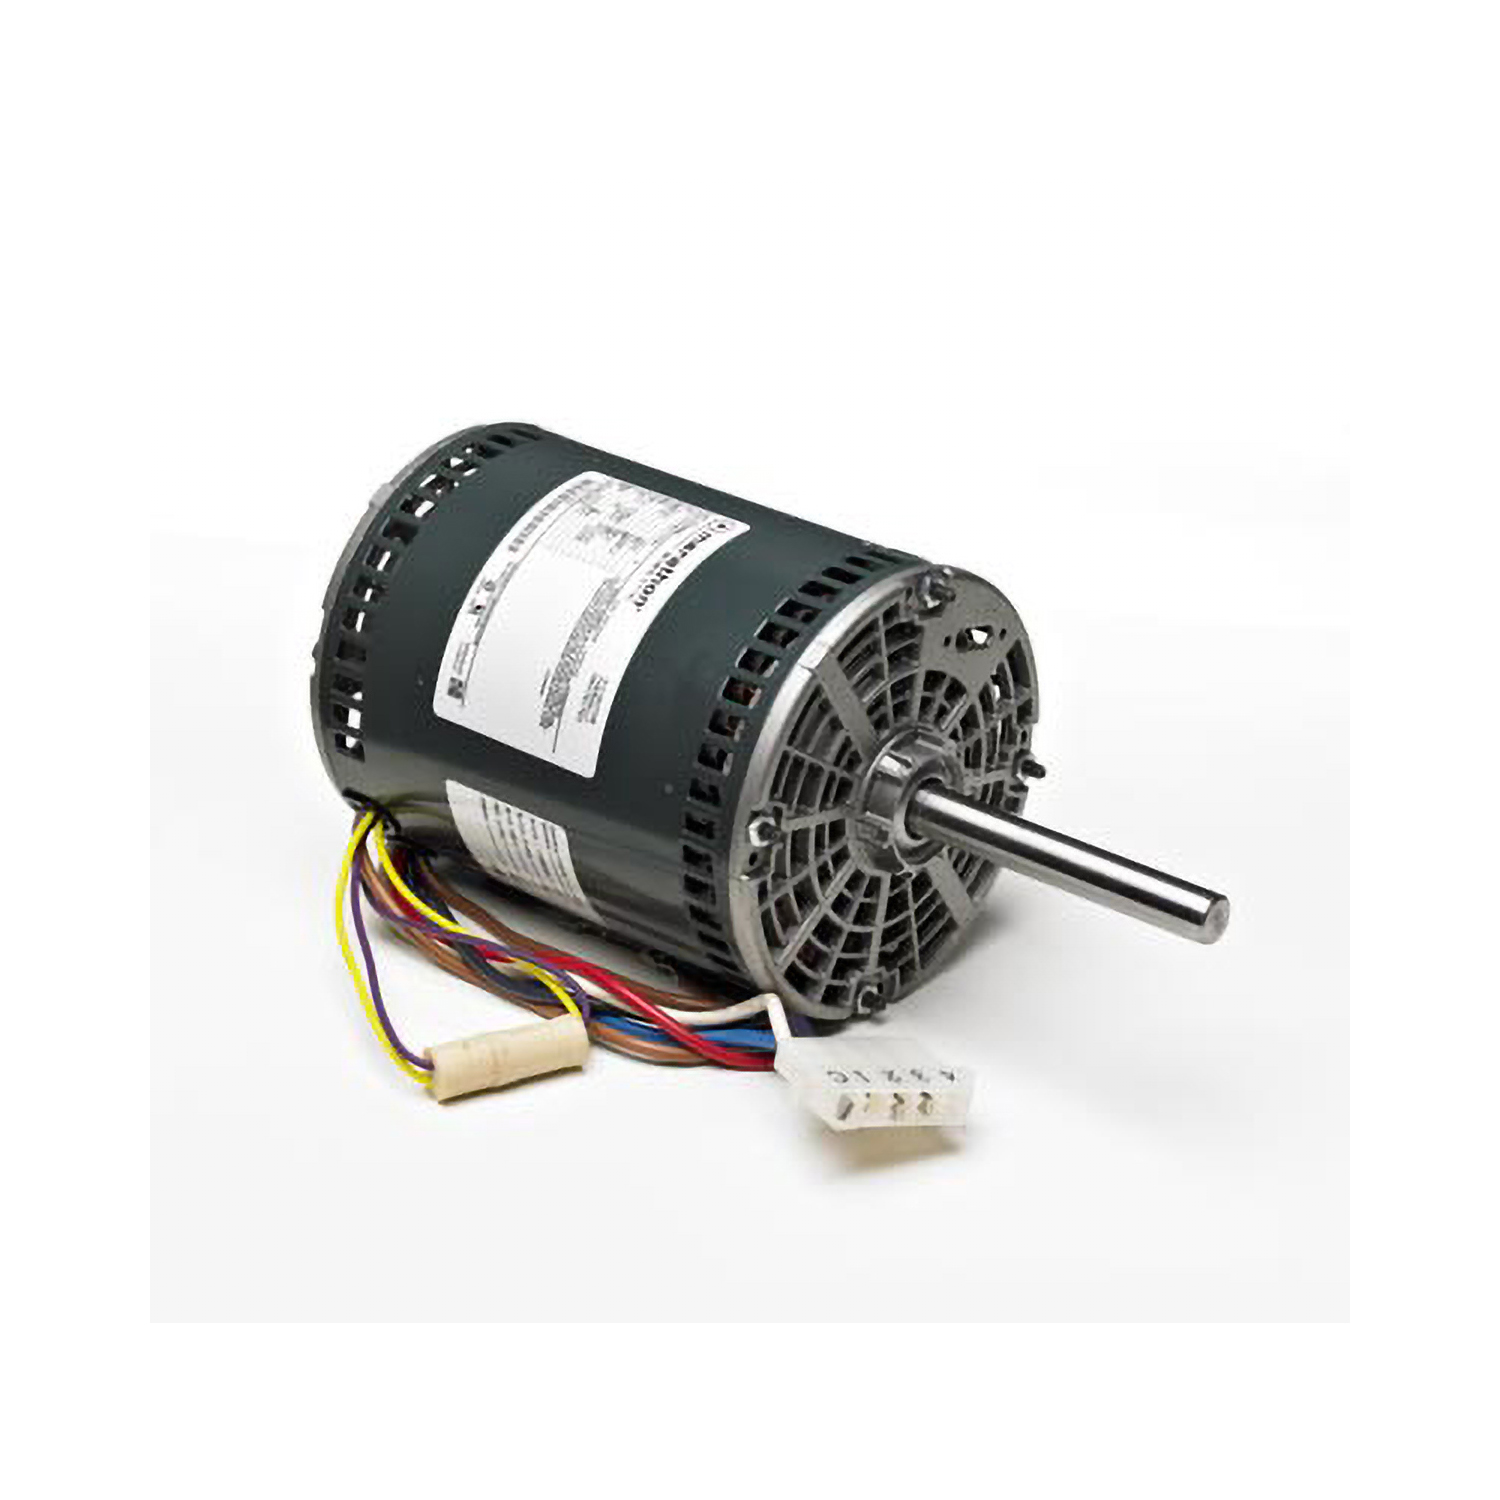 48 Frame PSC Direct Drive Fan and Blower Motor, 1 HP, 1075 RPM, 208-230 V